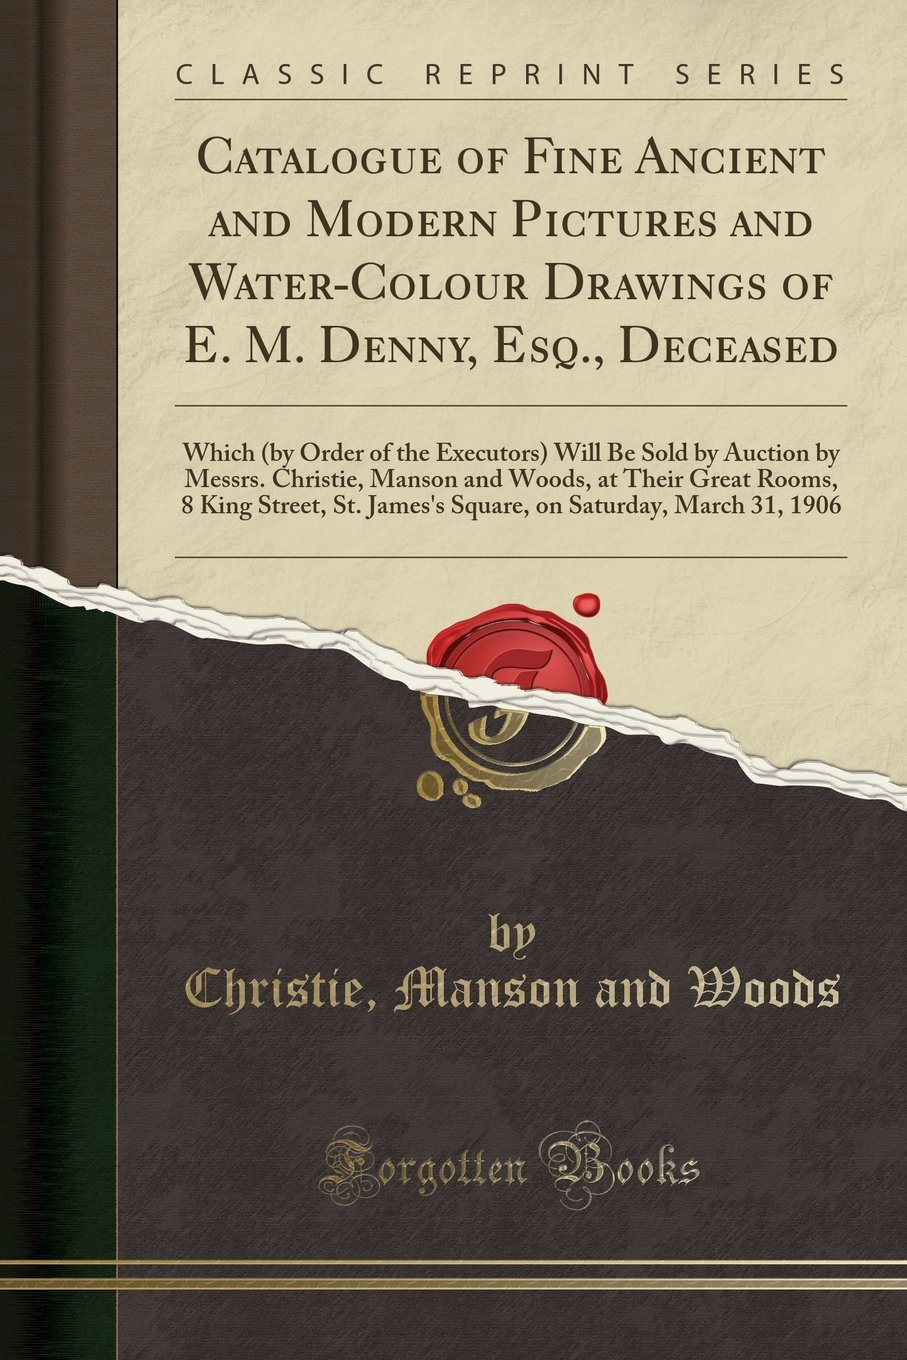 Read Online Catalogue of Fine Ancient and Modern Pictures and Water-Colour Drawings of E. M. Denny, Esq., Deceased: Which (by Order of the Executors) Will Be Sold ... Great Rooms, 8 King Street, St. James's Squar pdf